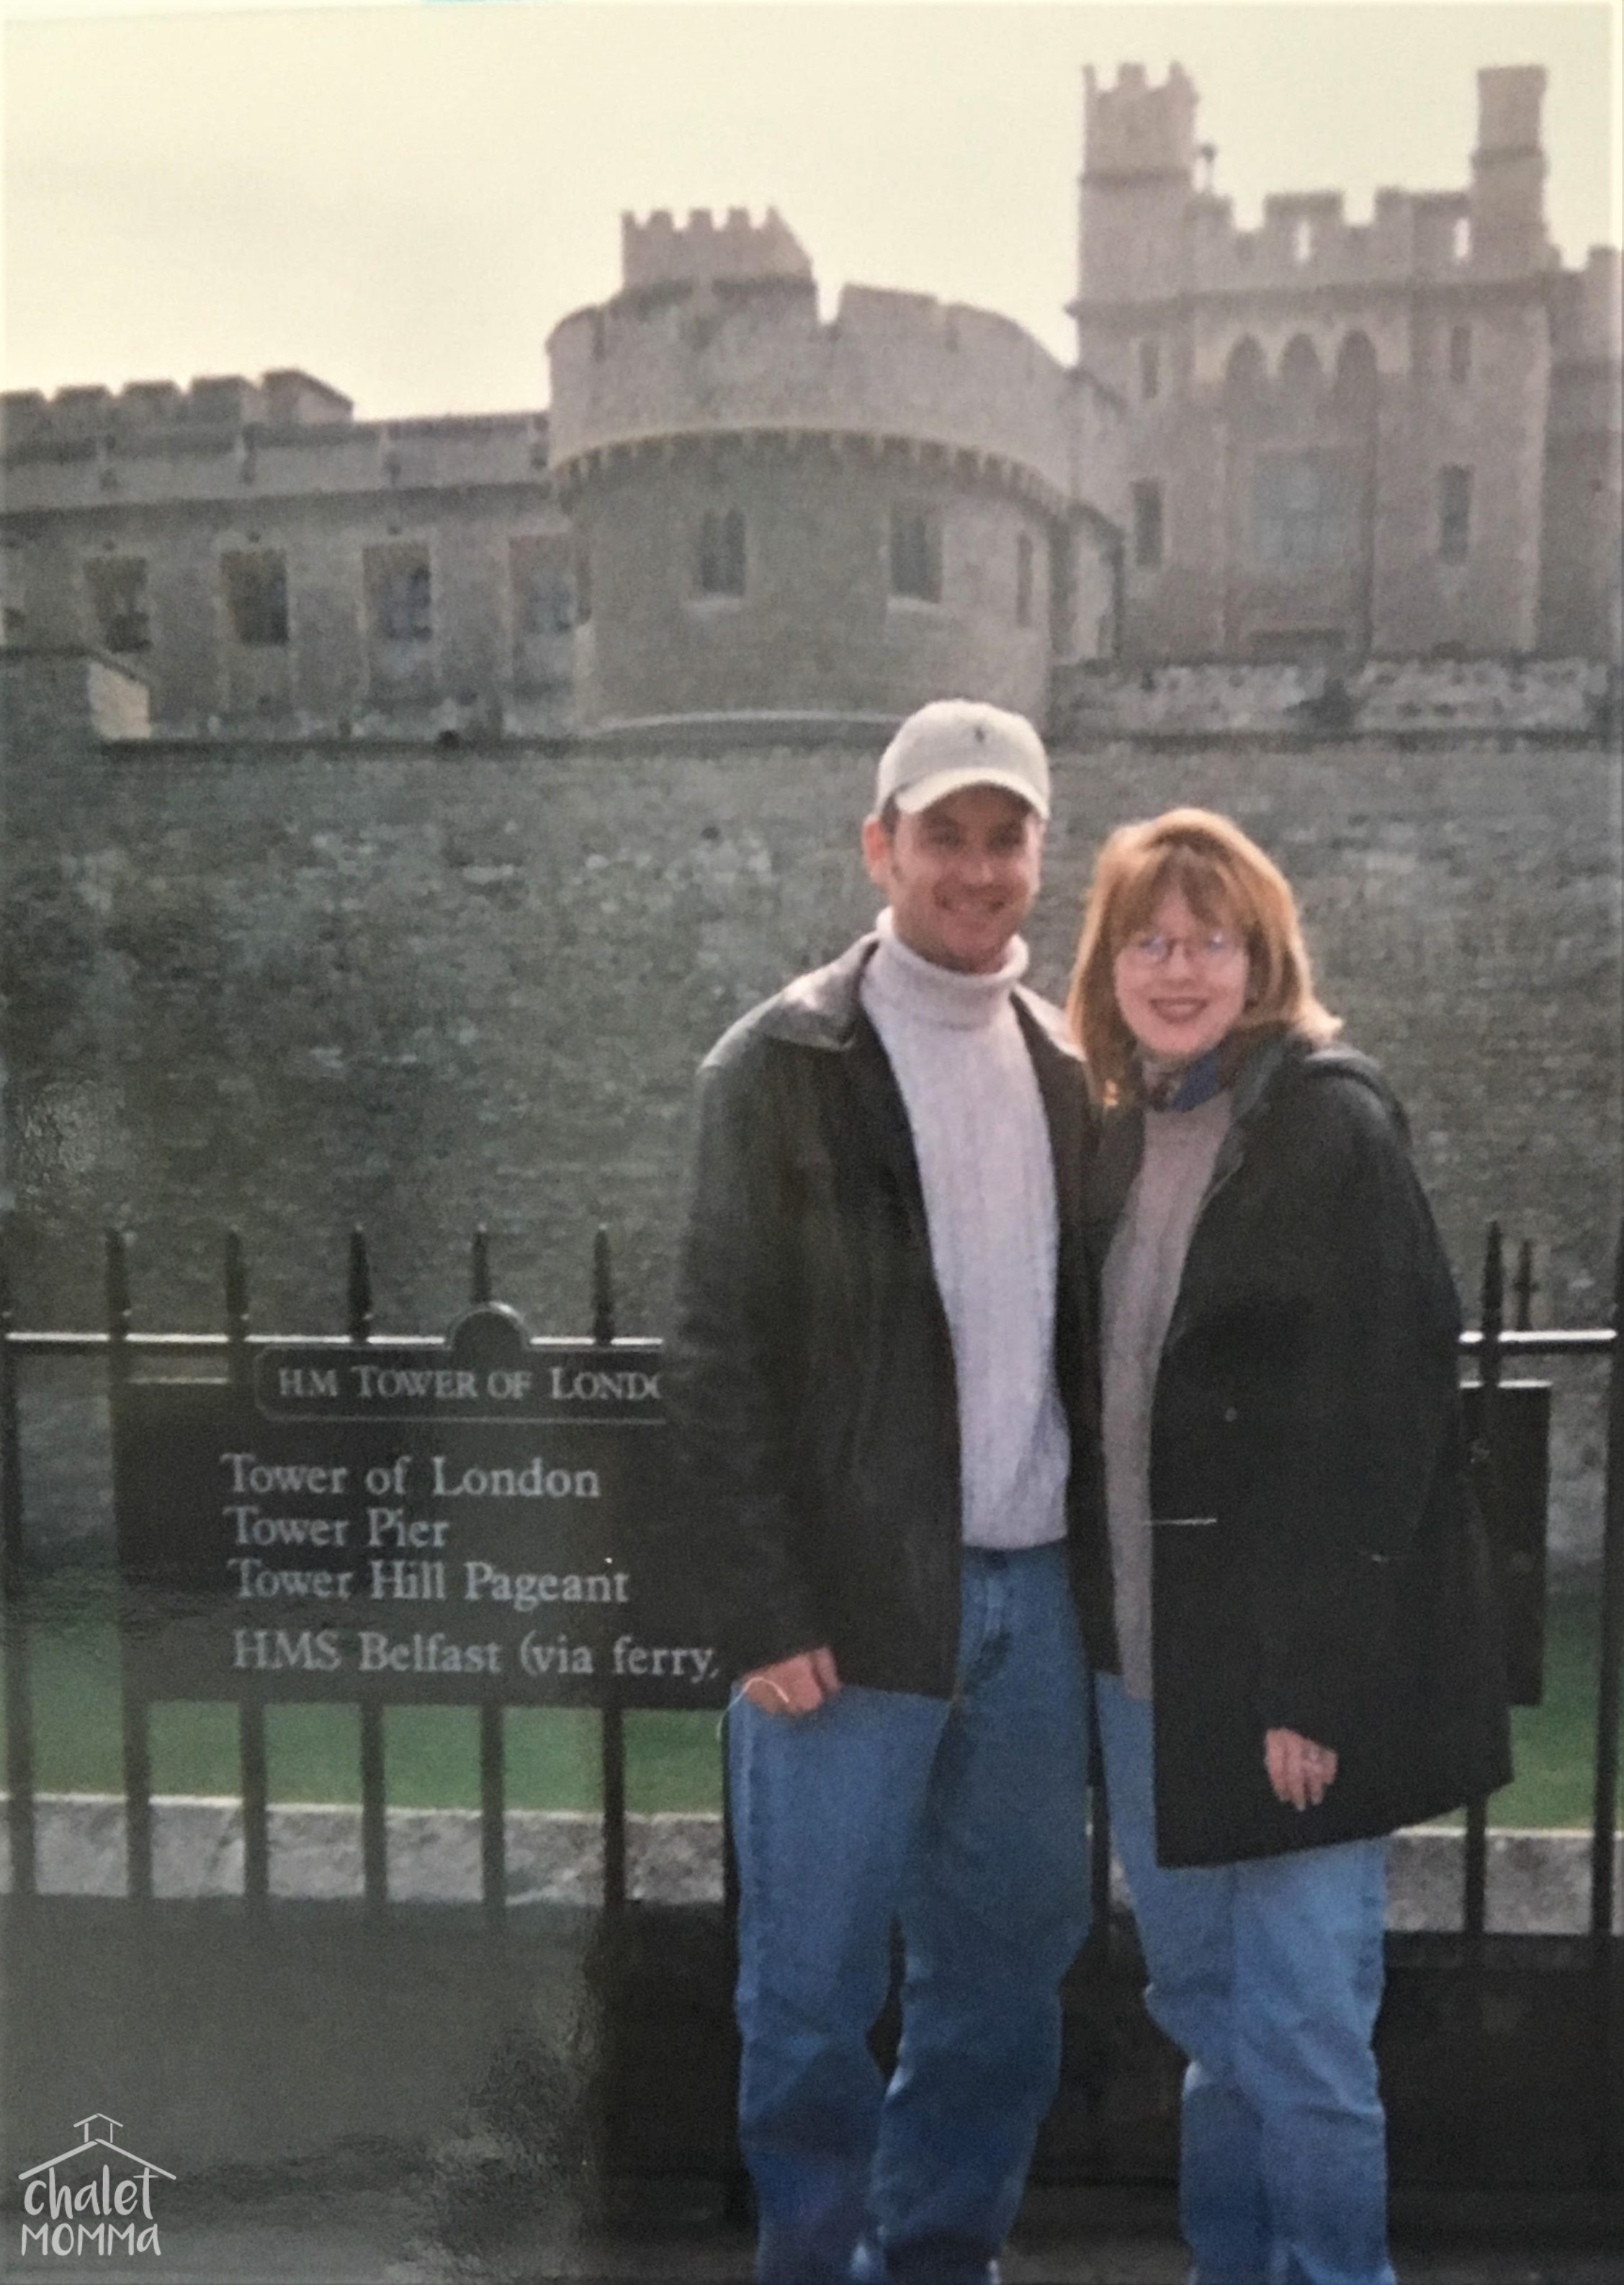 At the  Tower of London on Our Honeymoon  October 9, 1998.